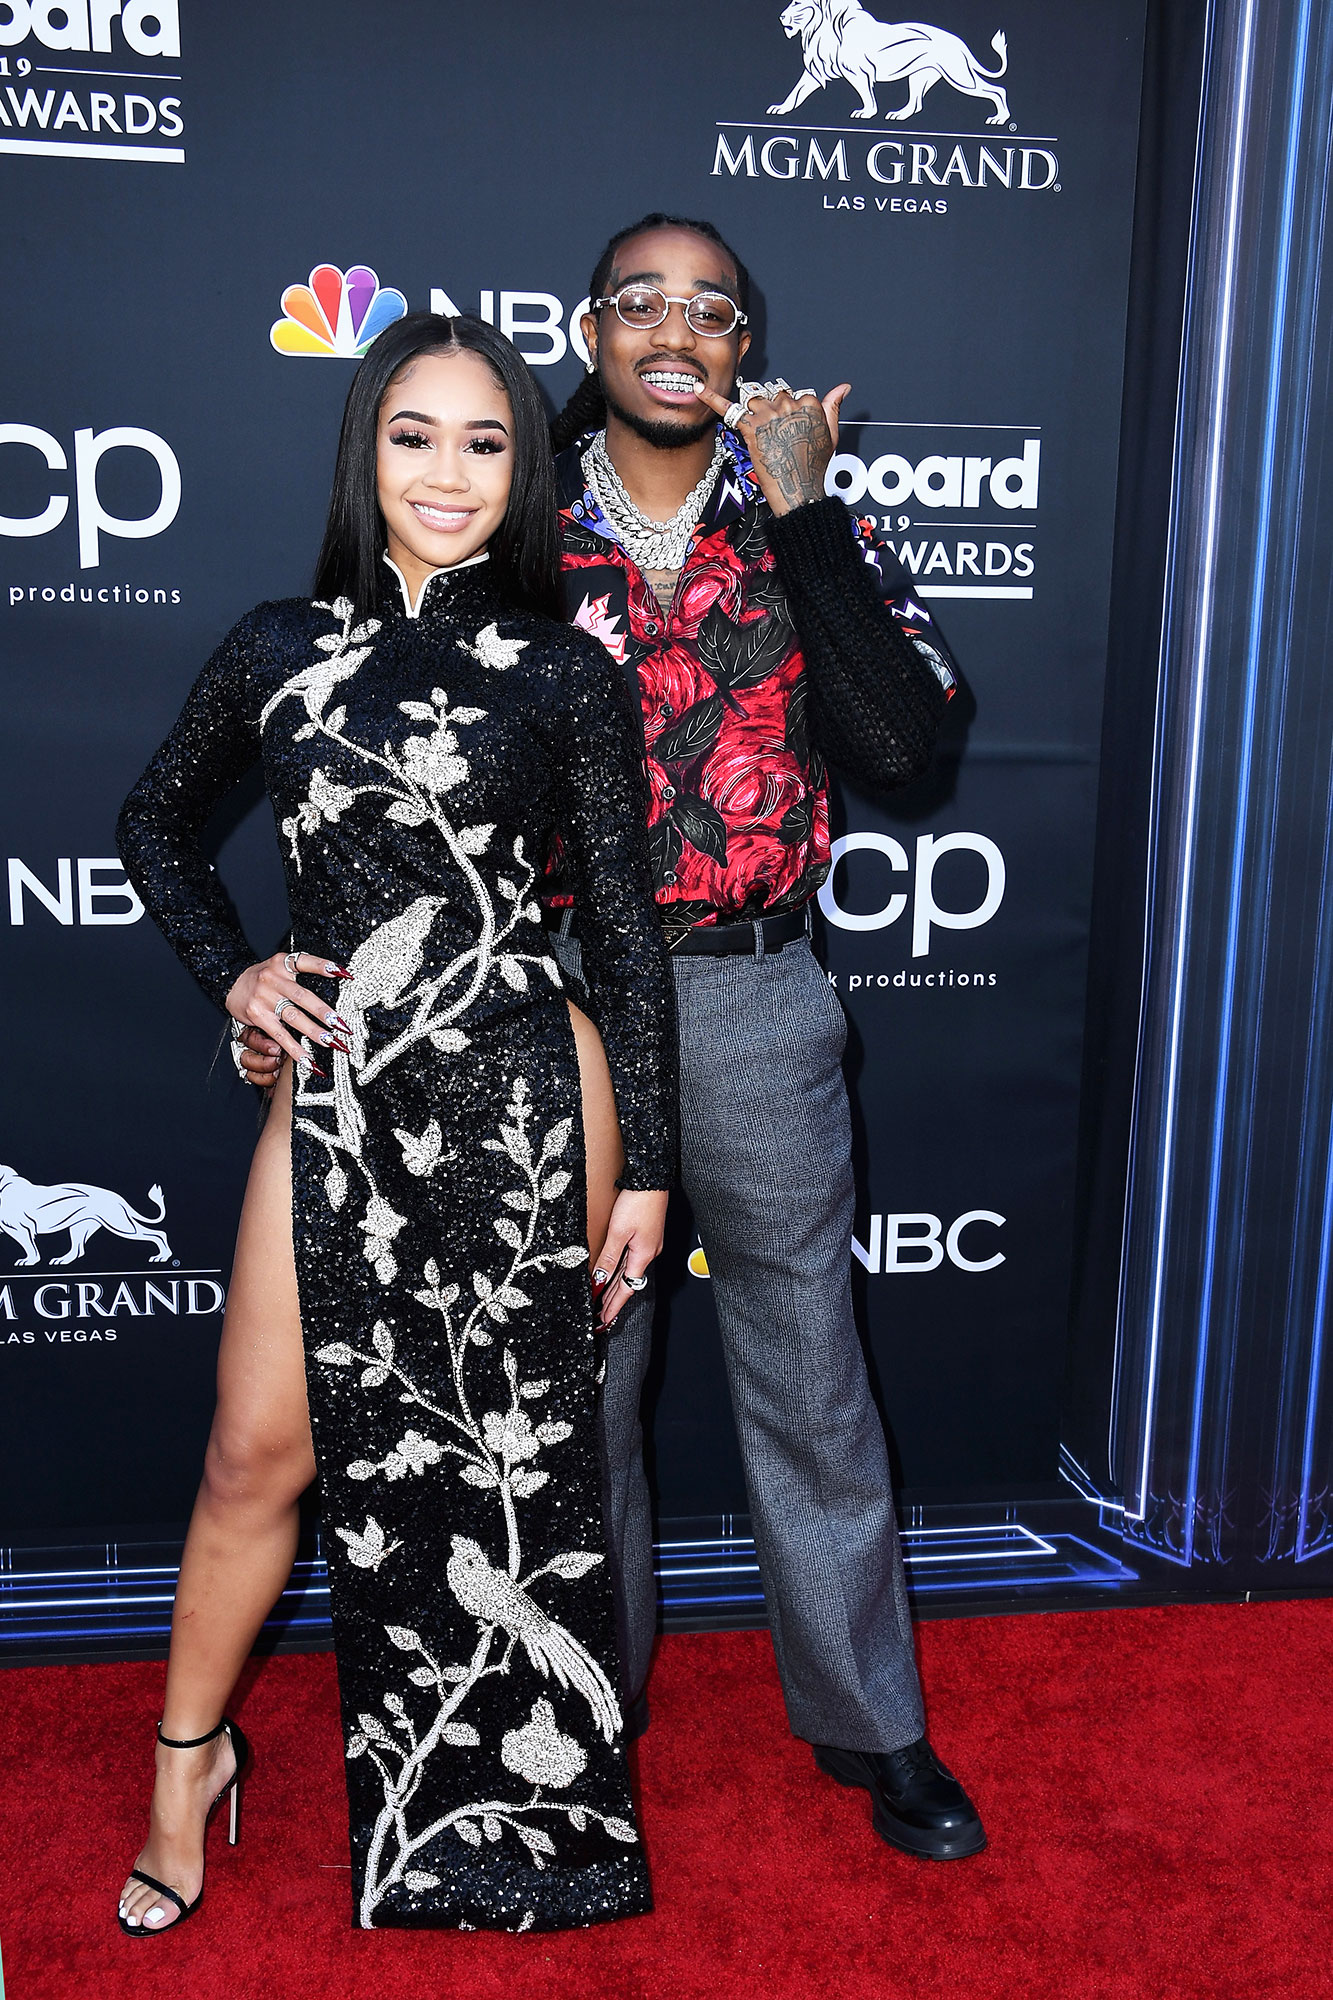 See the Hottest Couples at the BBMAs Saweetie with Quavo of Migos - It was all about the sparkle for the glitzy duo, who coordinated in shimmering floral prints.